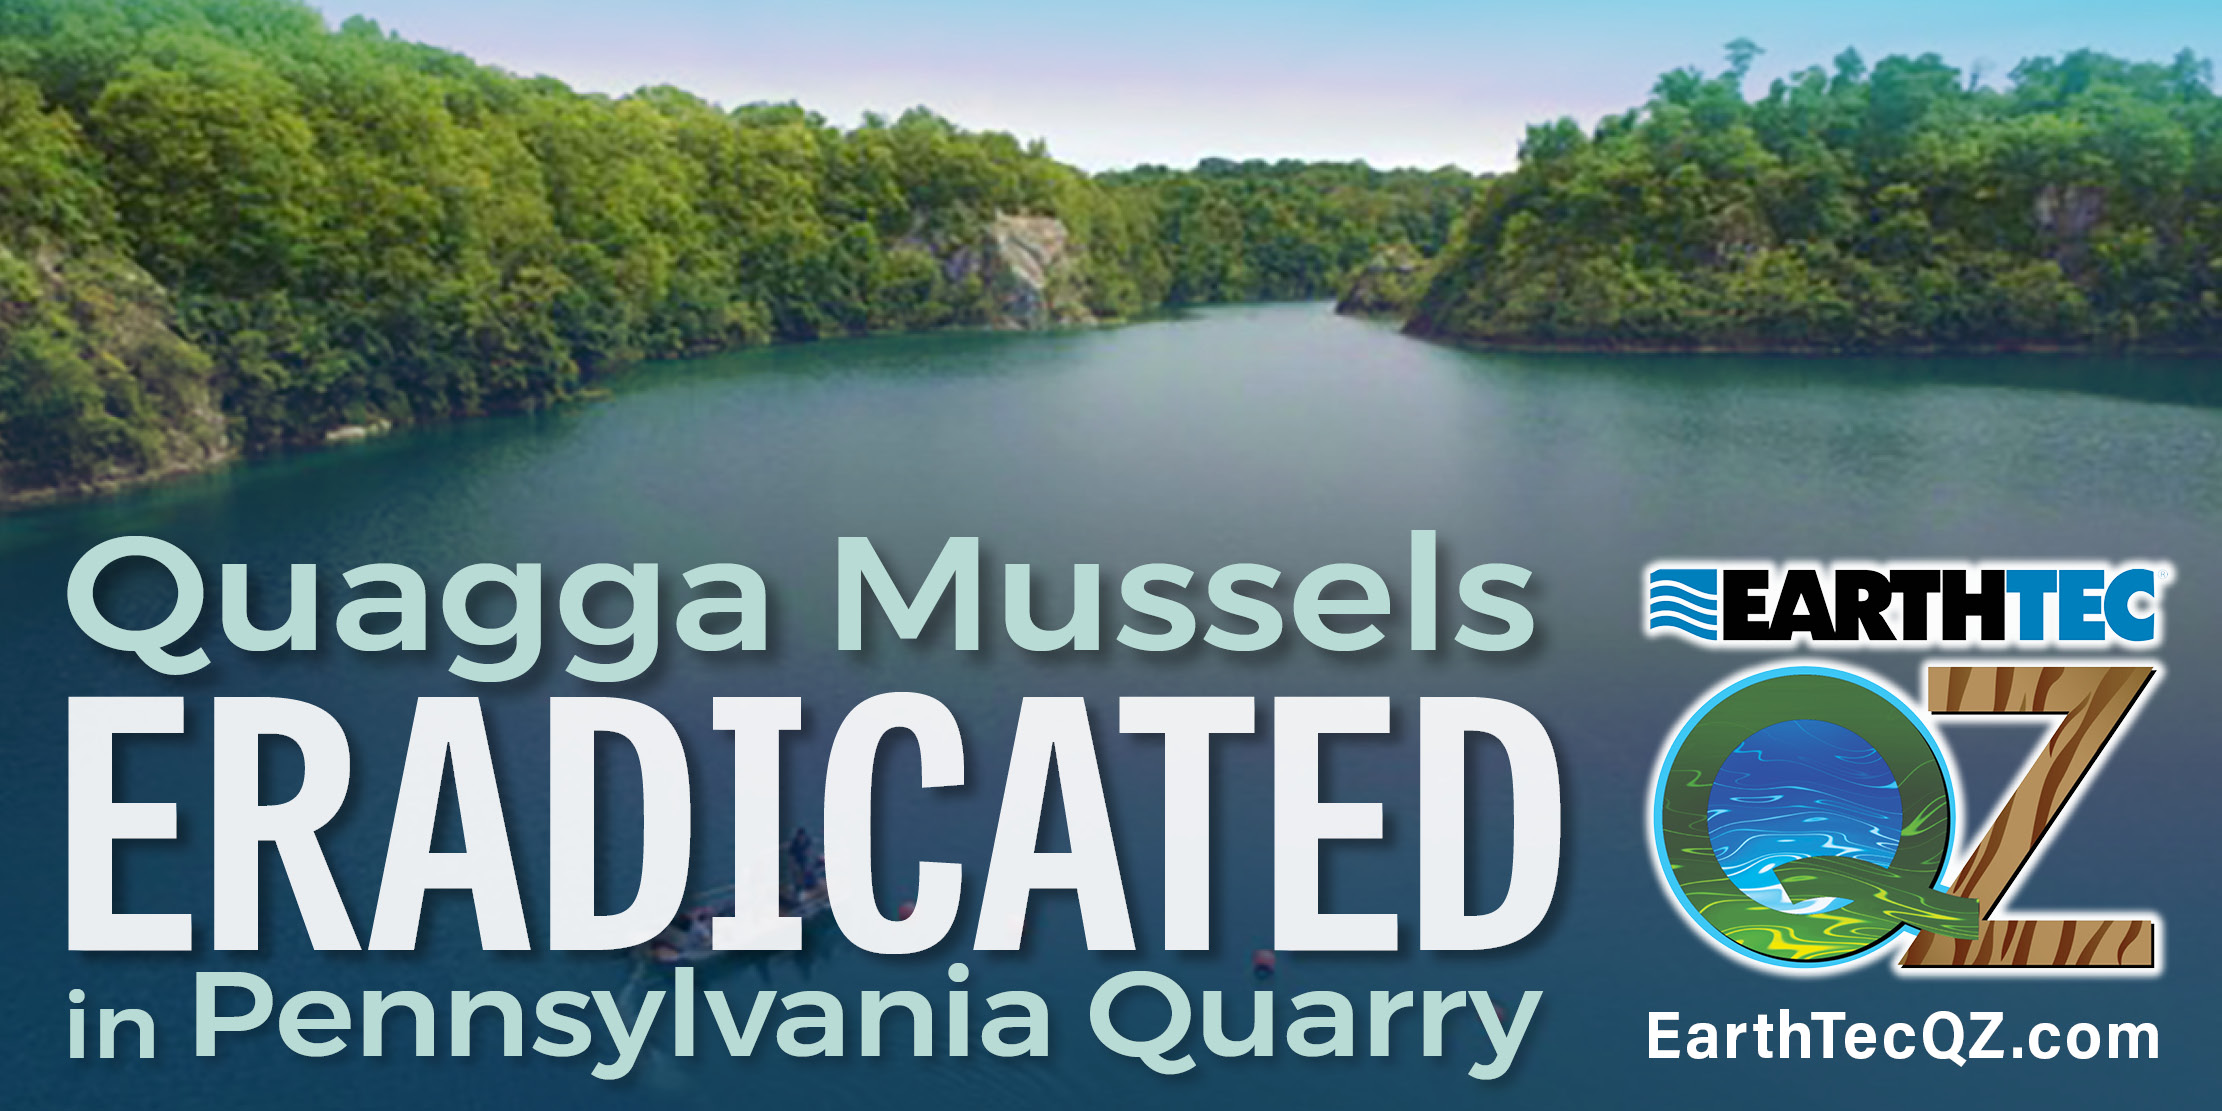 Quagga Mussel Eradication Confirmed in Historic Pennsylvania Quarry